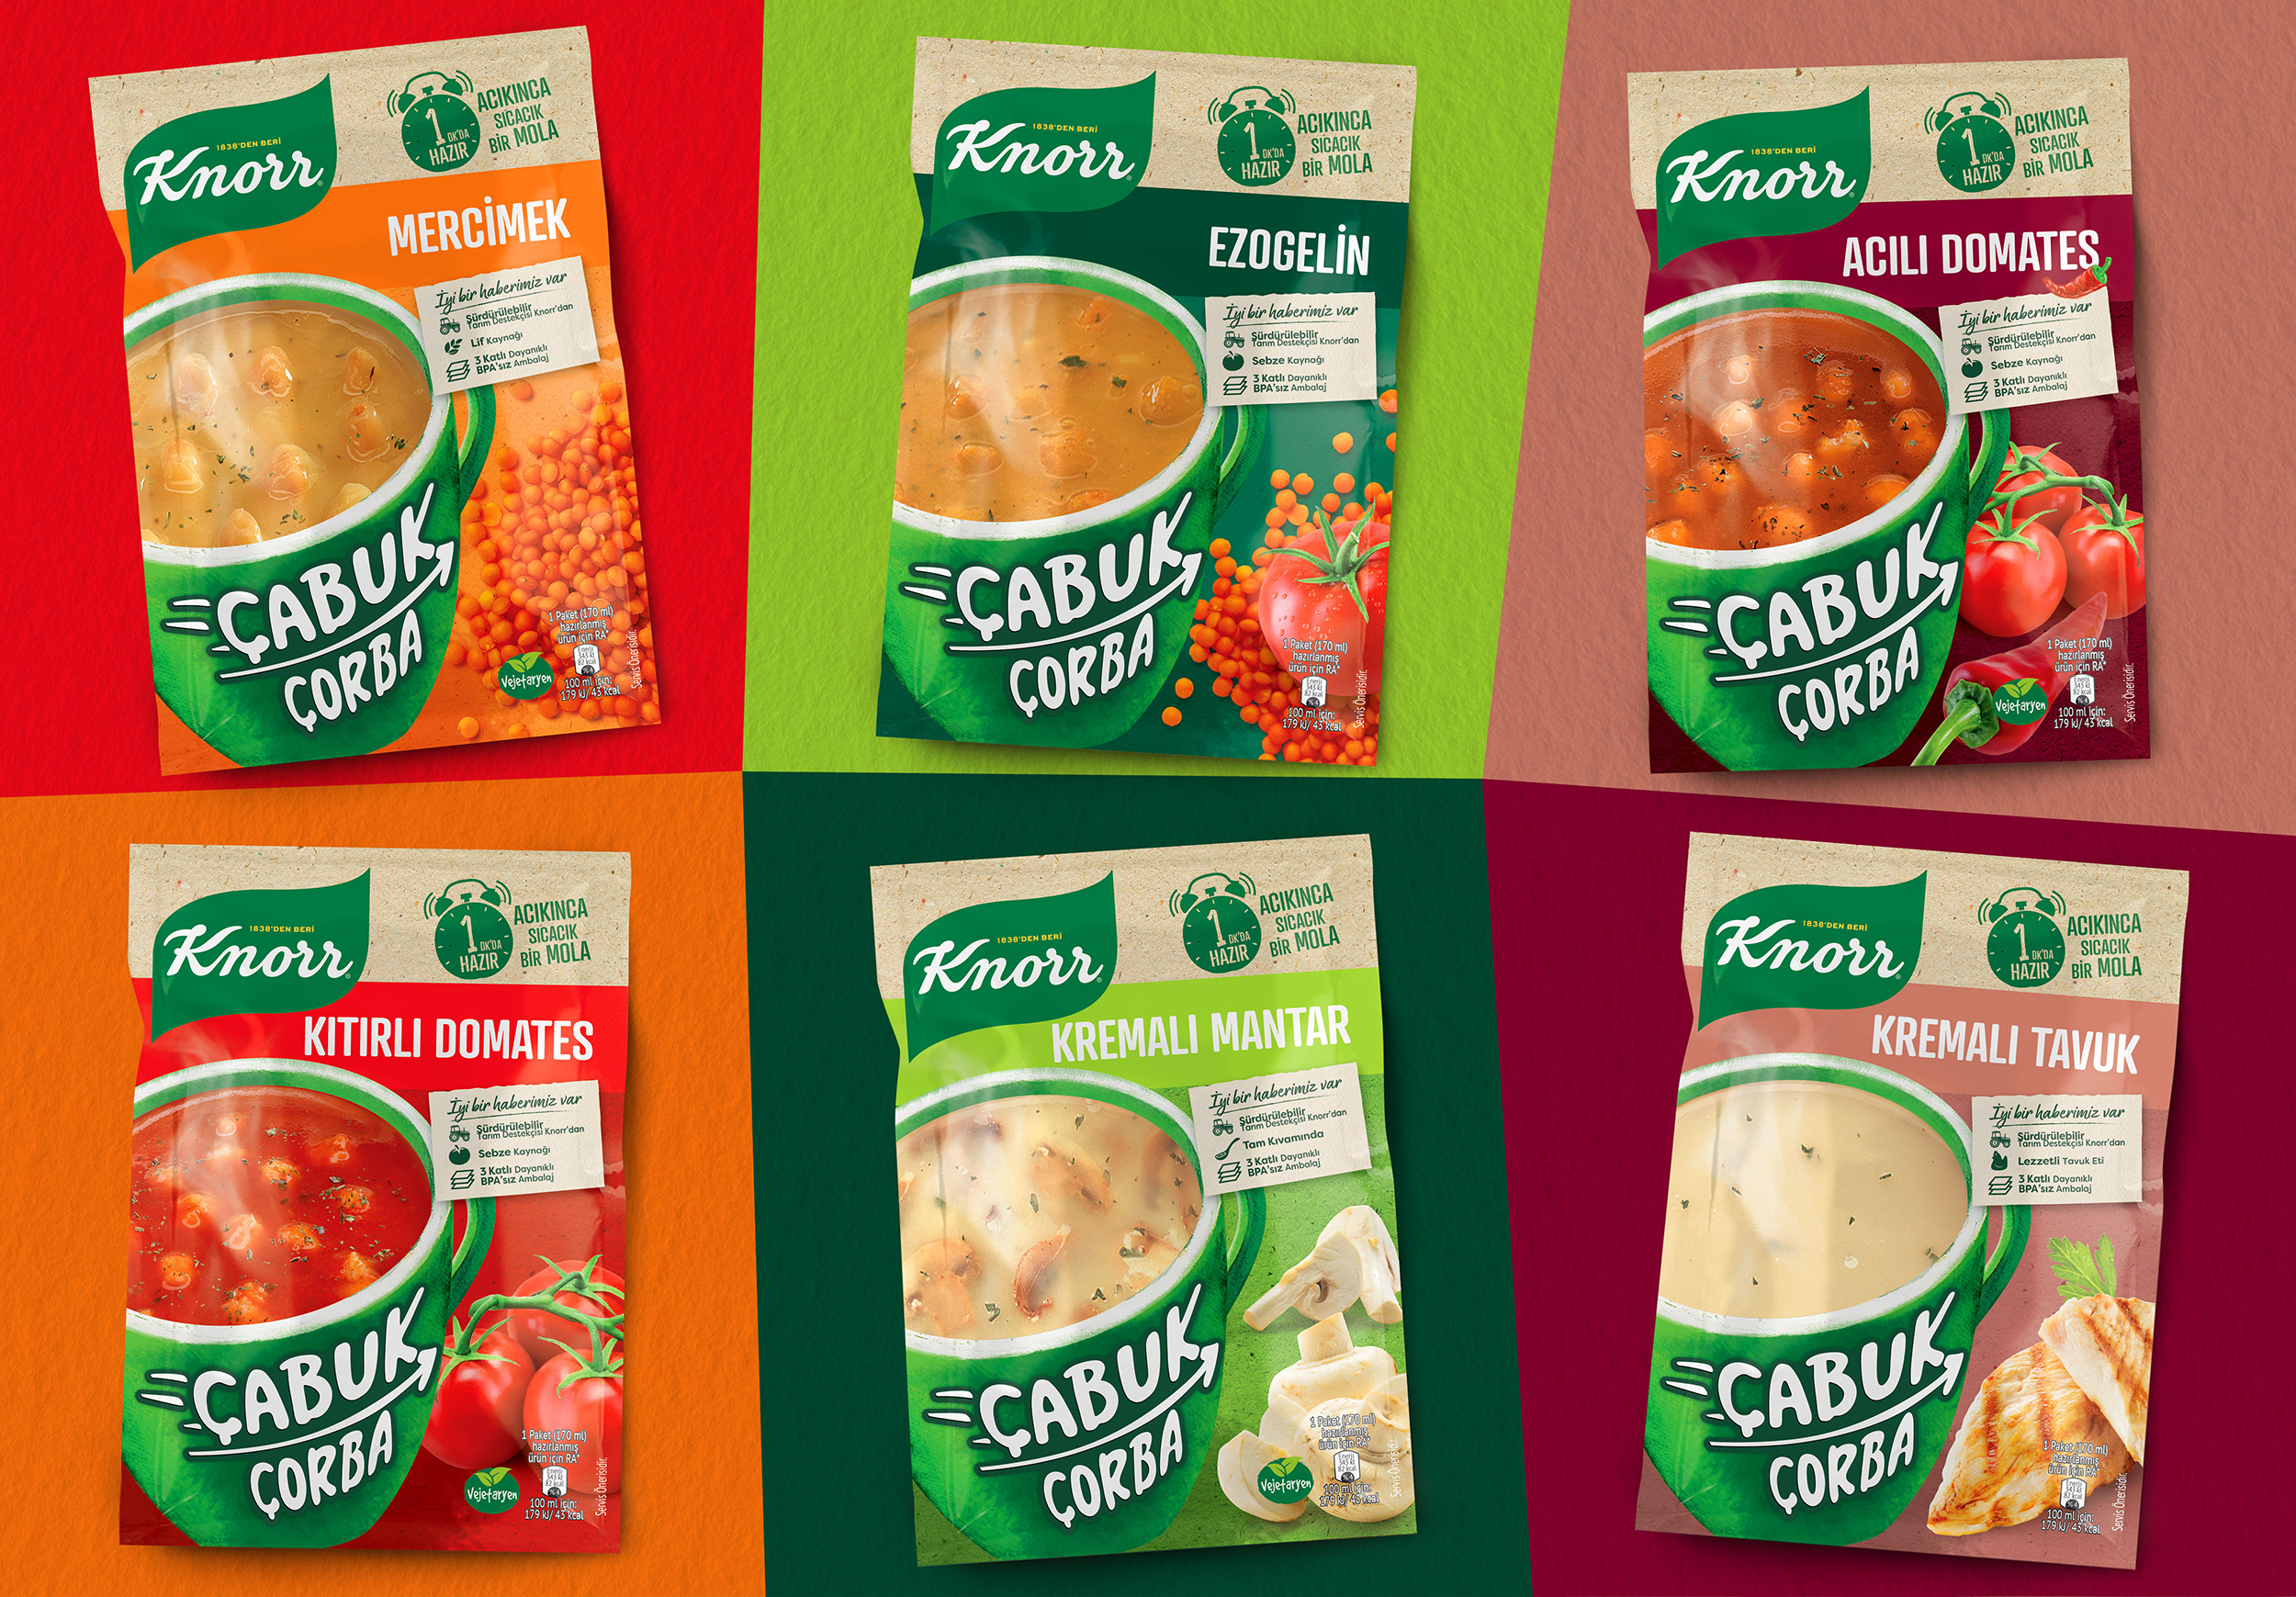 Knorr Instant Soup Packaging Design from Orhan Irmak Tasarim